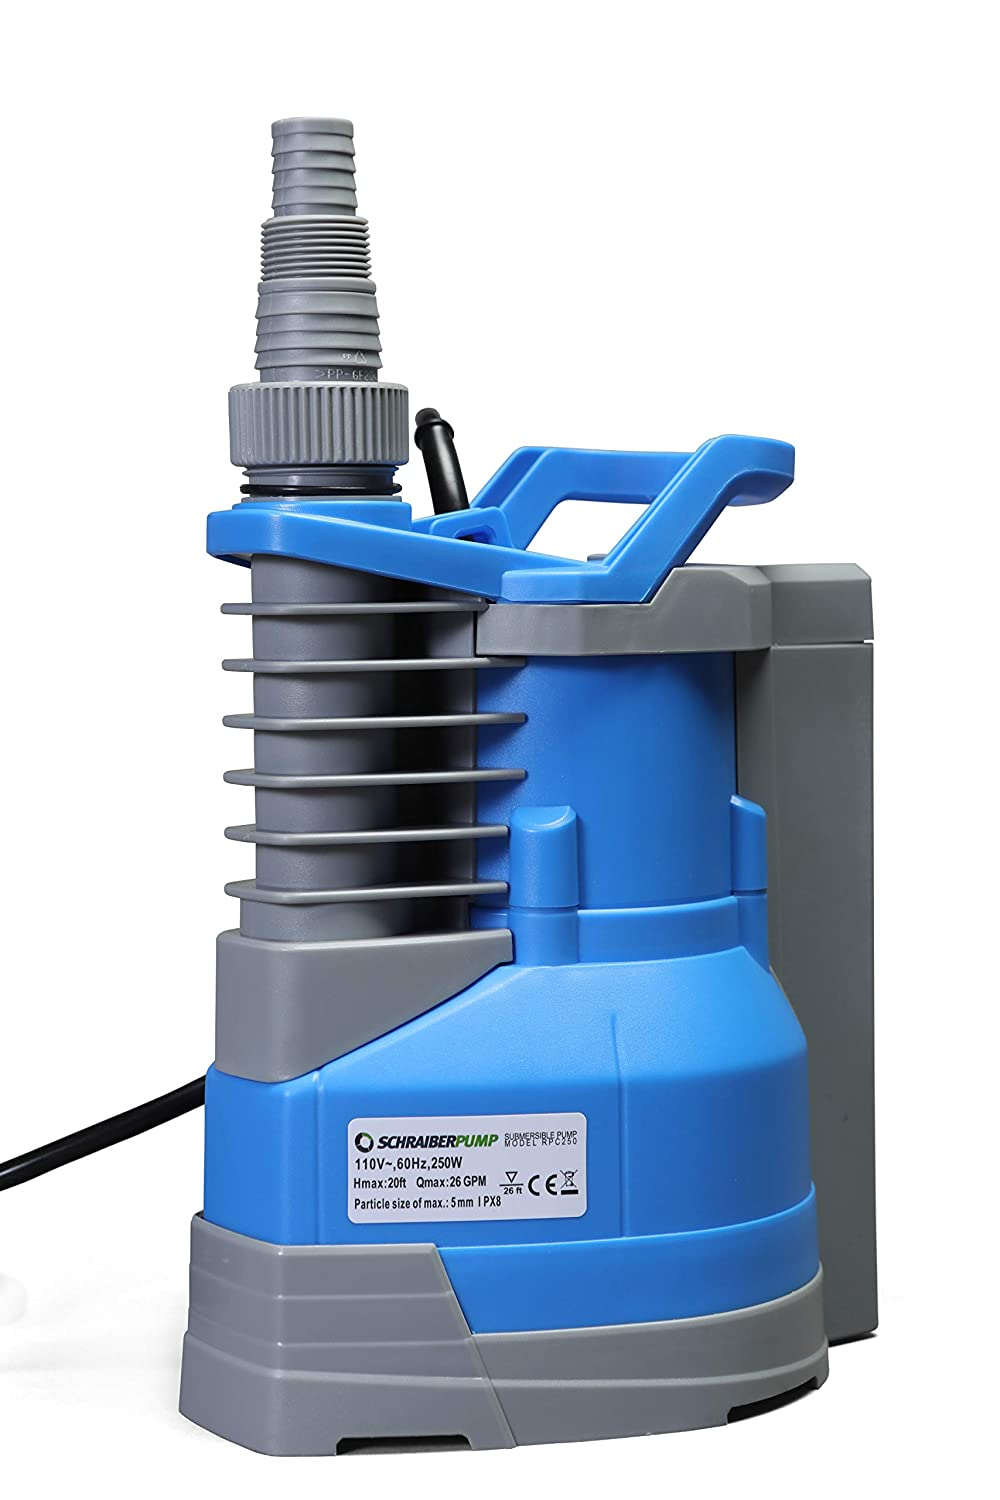 Submersible Clean Water Sump Pump 1/3hp with built in automatic ON/OFF (with adjustable start heights) 1560GPH, 20'Head, Thermal Protector, Copper Winding - Schraiberpump